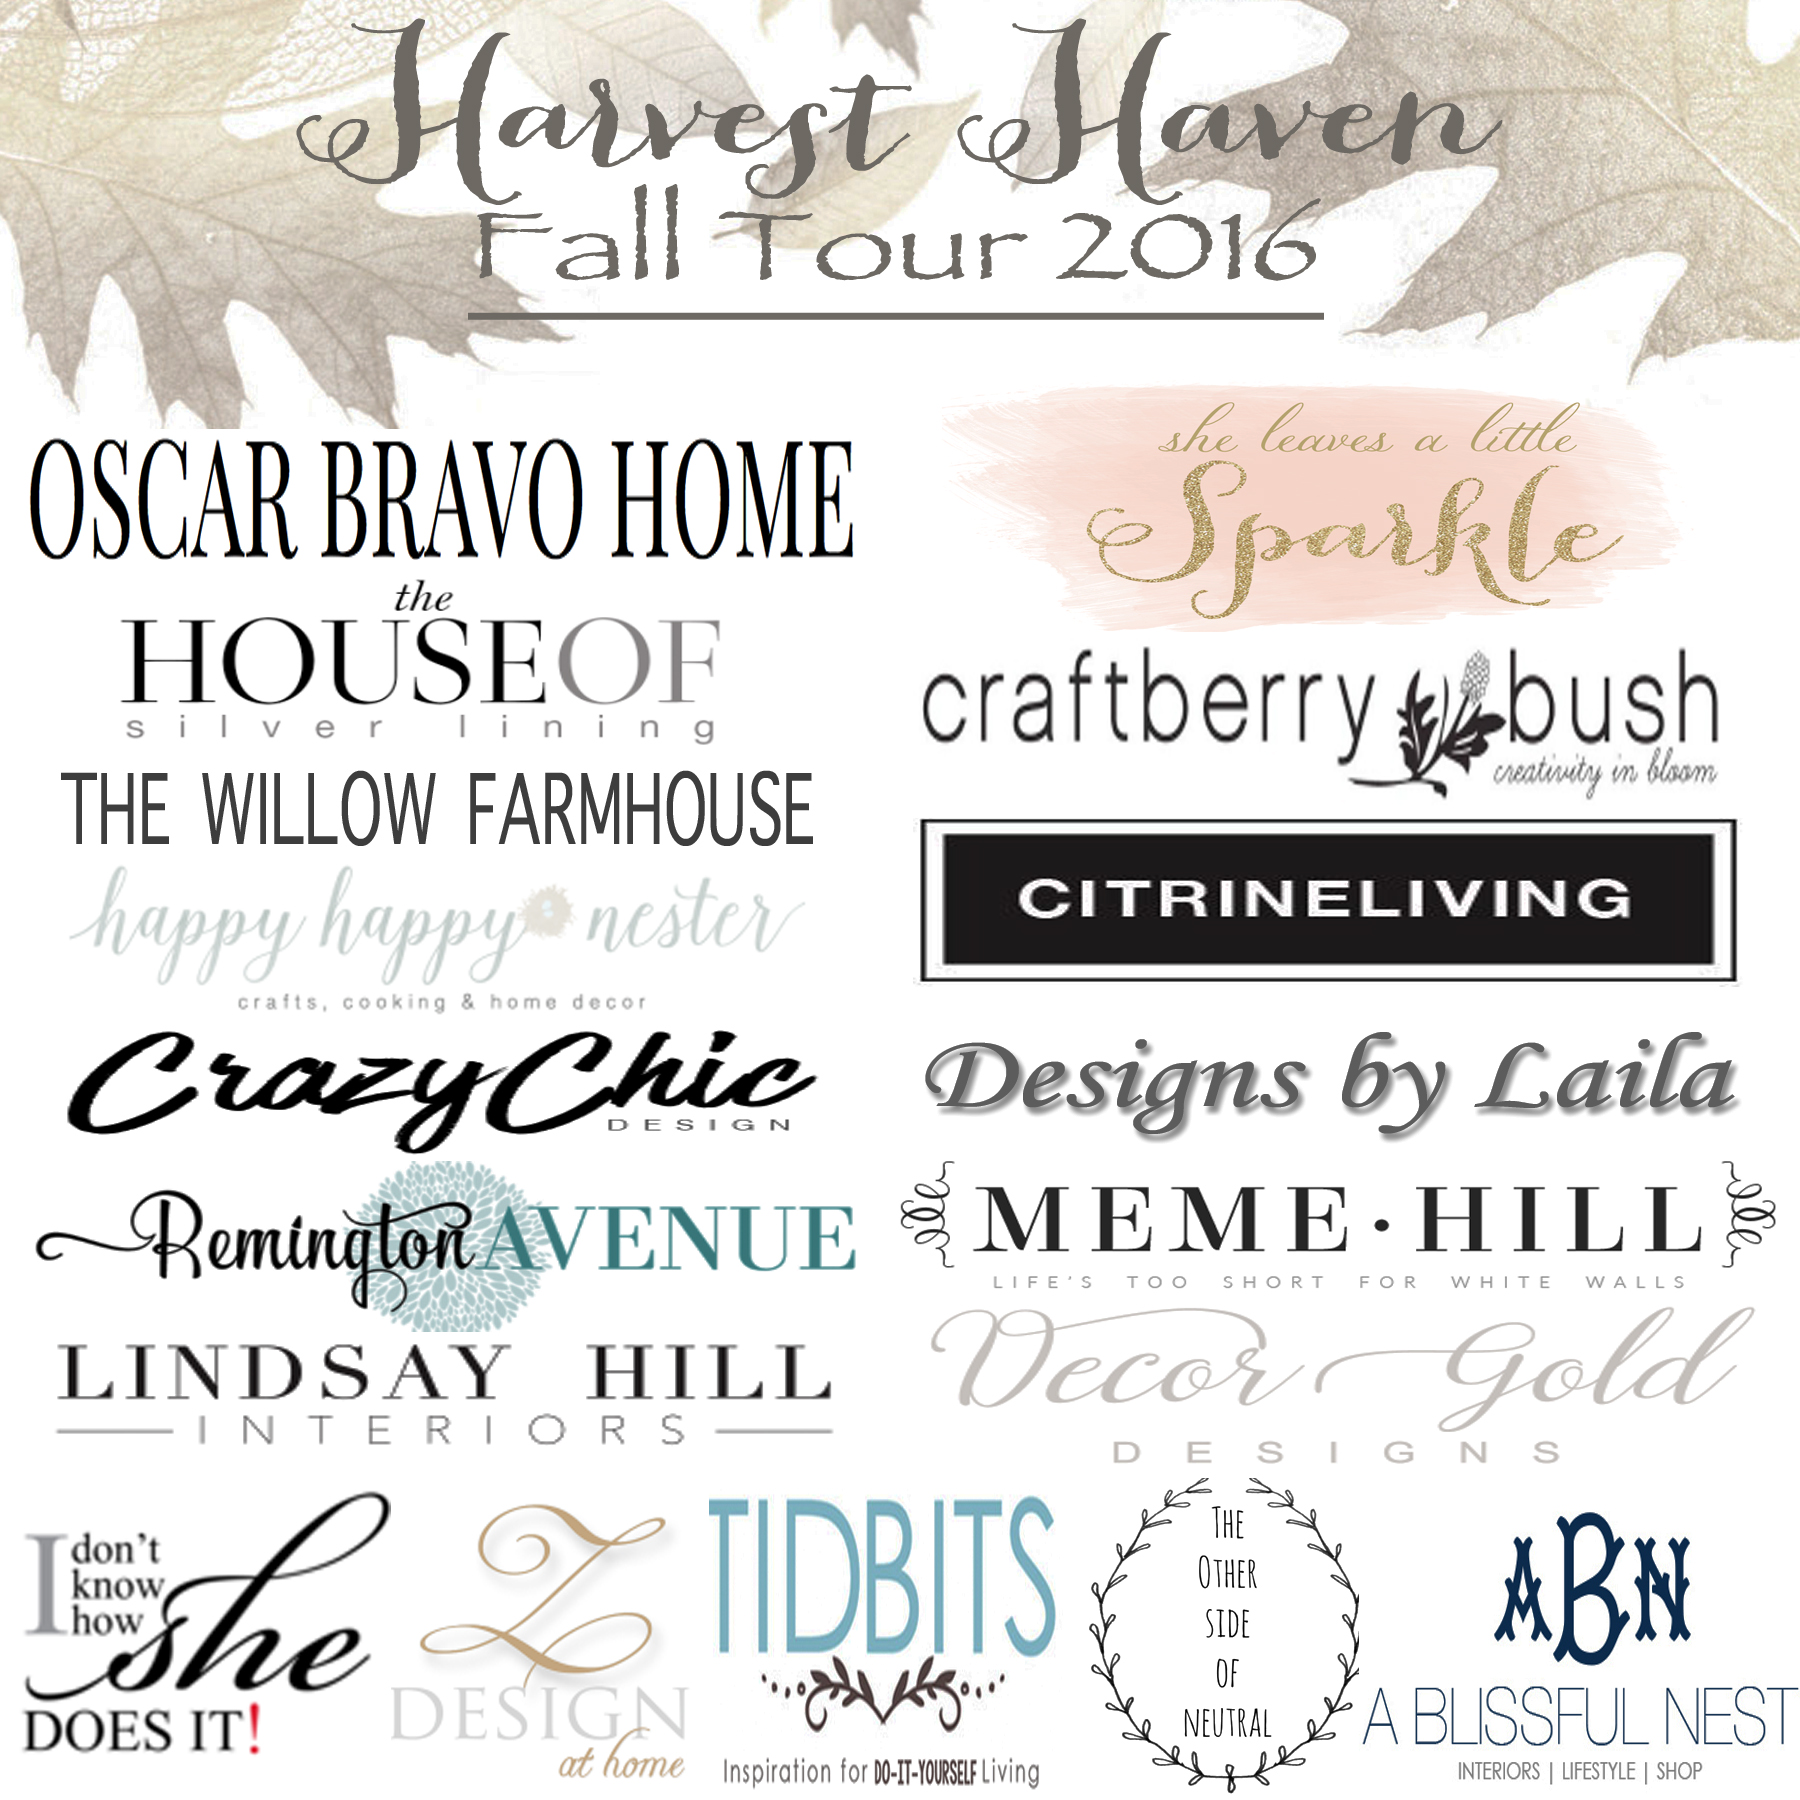 Harvest Haven Fall Tour 2016 Lindsay Hill Interiors